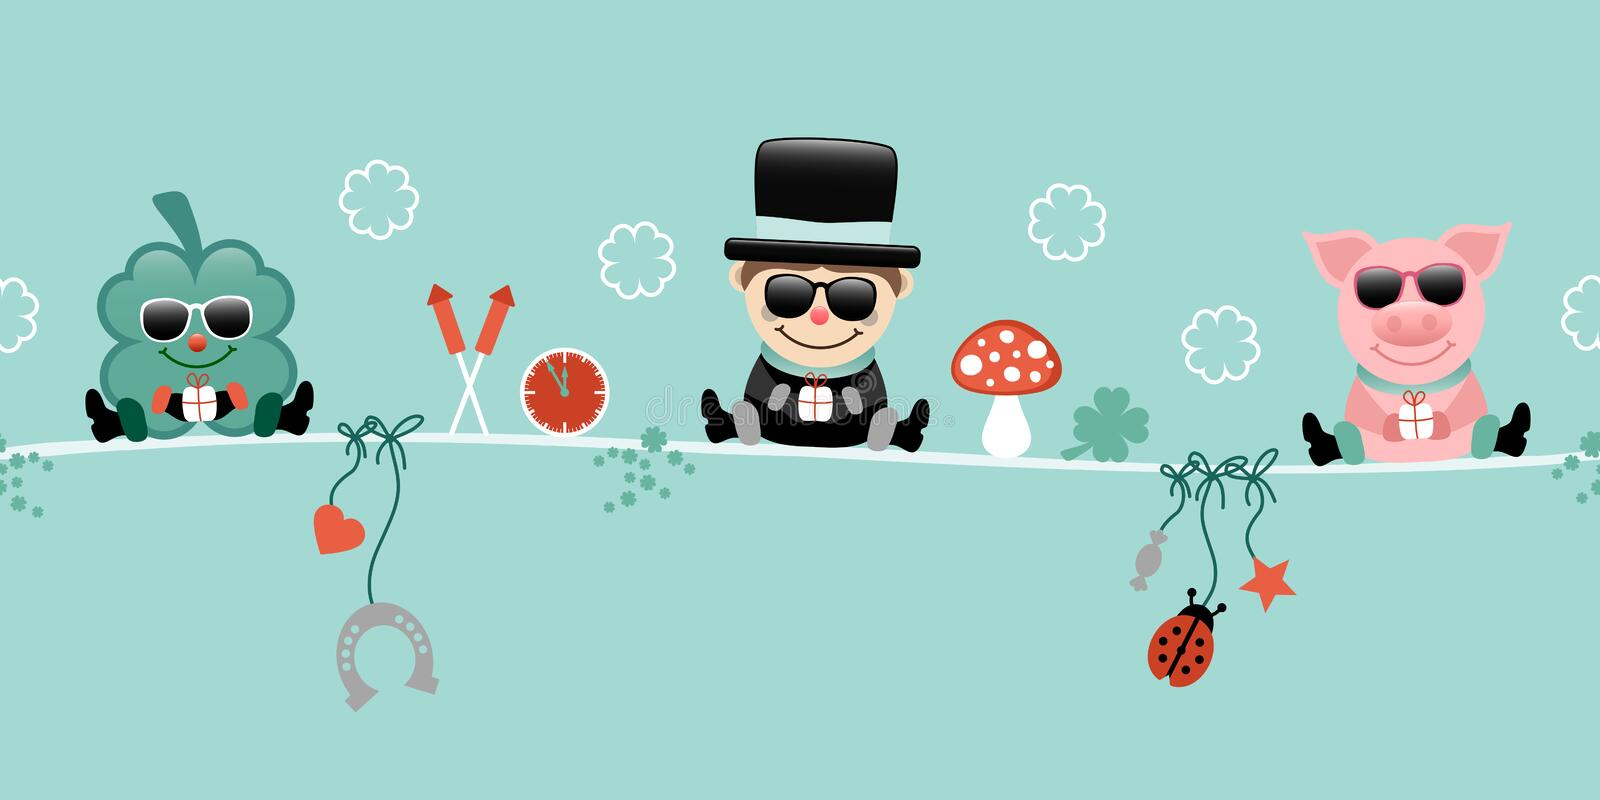 Shamrock Chimney Sweep And Pig With Sunglasses Hanging Icons New Years Eve Turquoise 库存例证